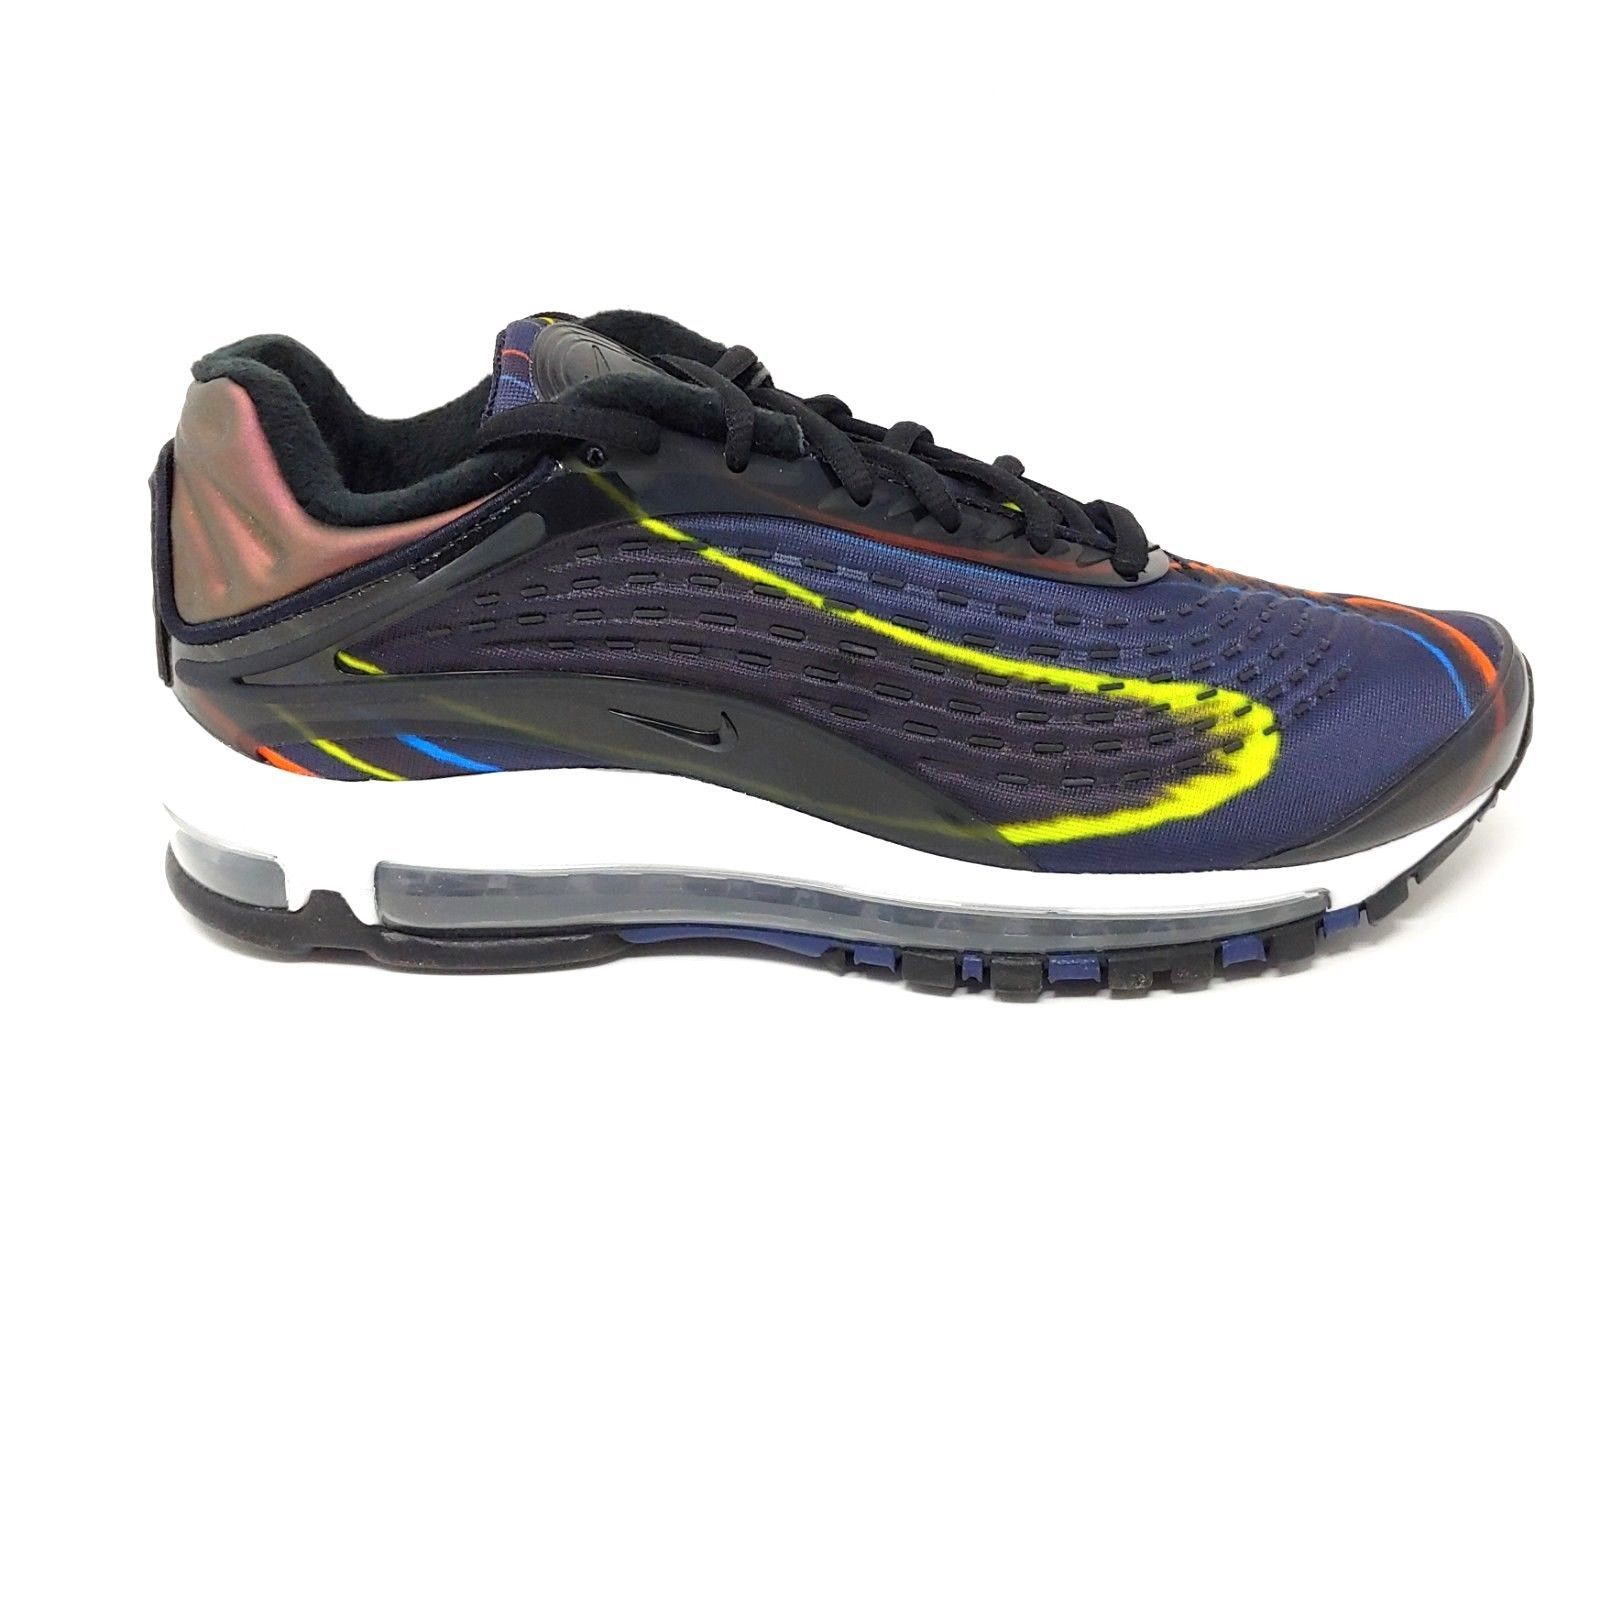 Nike Air Max Deluxe Schwarz Mitternacht and 27 similar items